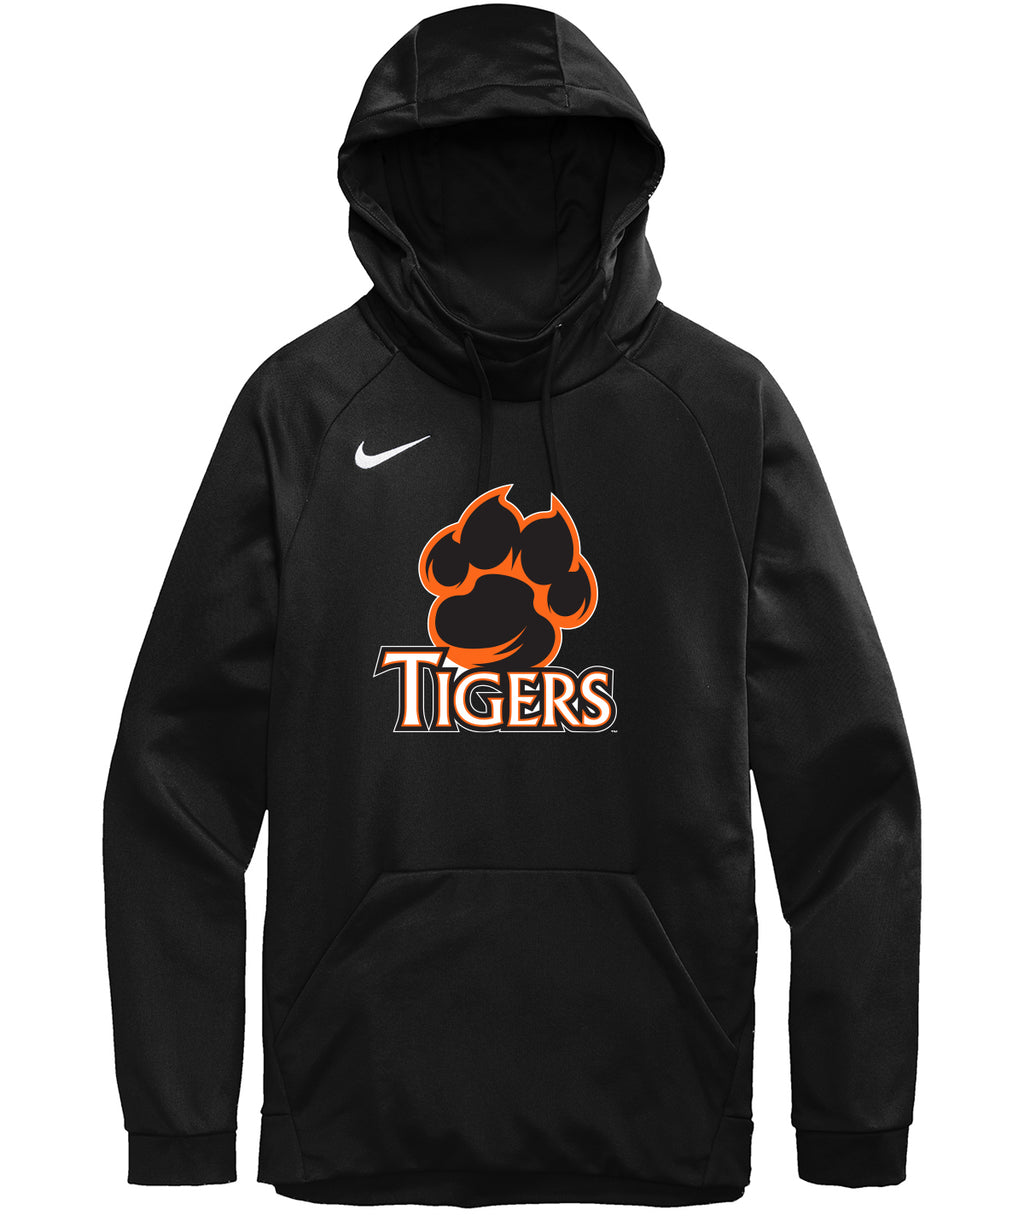 Hillside Tigers Nike Hooded Sweatshirt